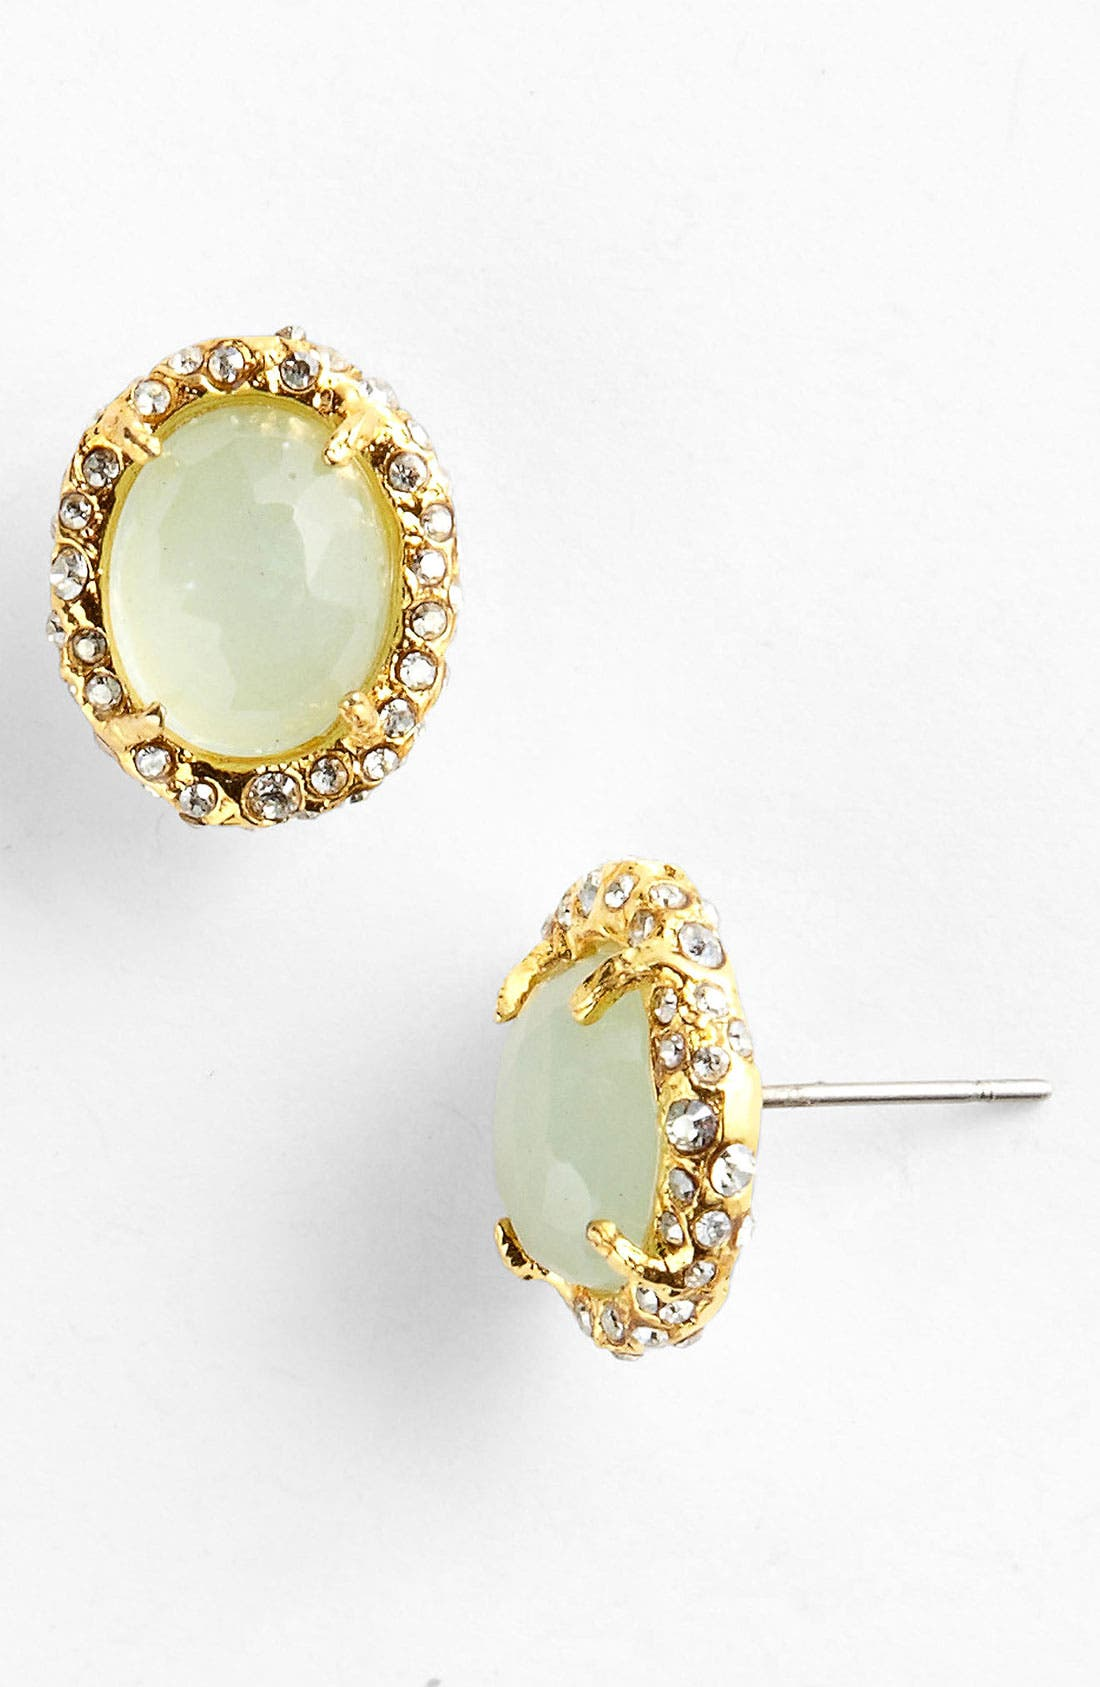 Alternate Image 1 Selected - Alexis Bittar 'Elements - Siyabona' Stone Stud Earrings (Nordstrom Exclusive)